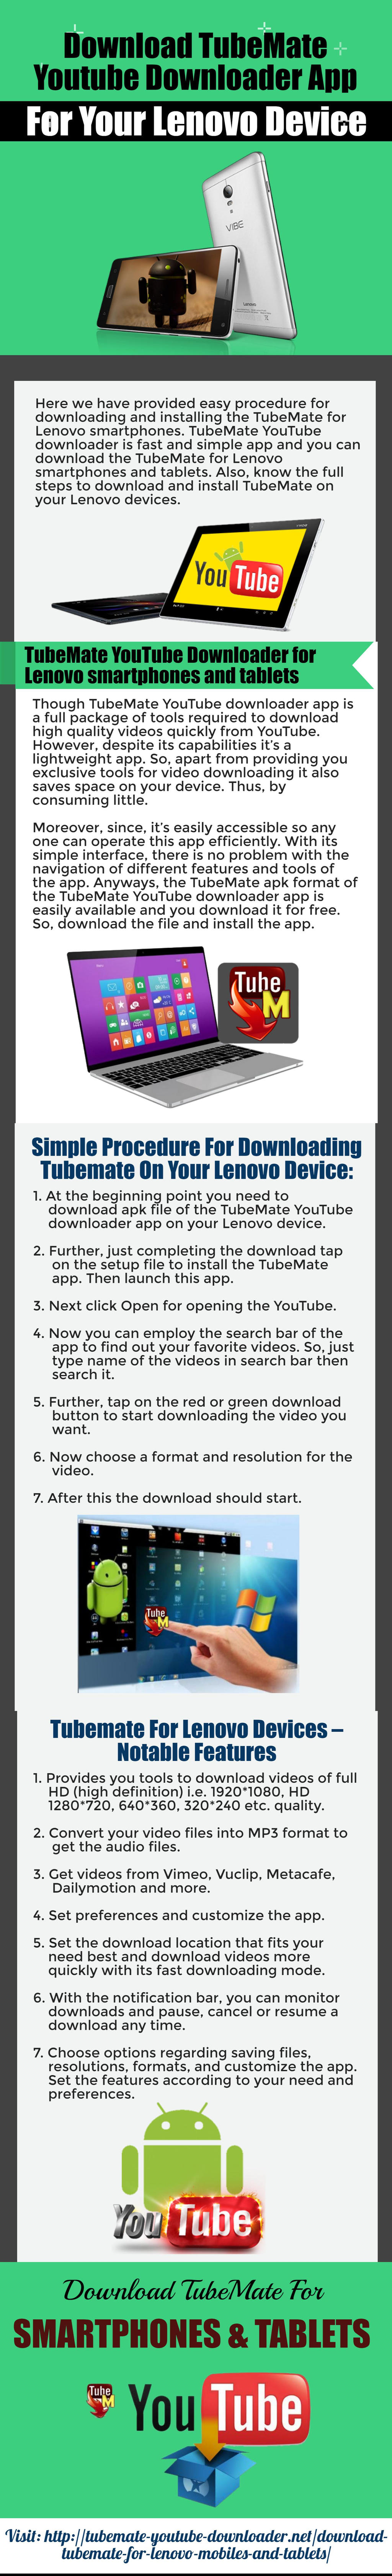 Download TubeMate YouTube downloader app for your by tomstout on